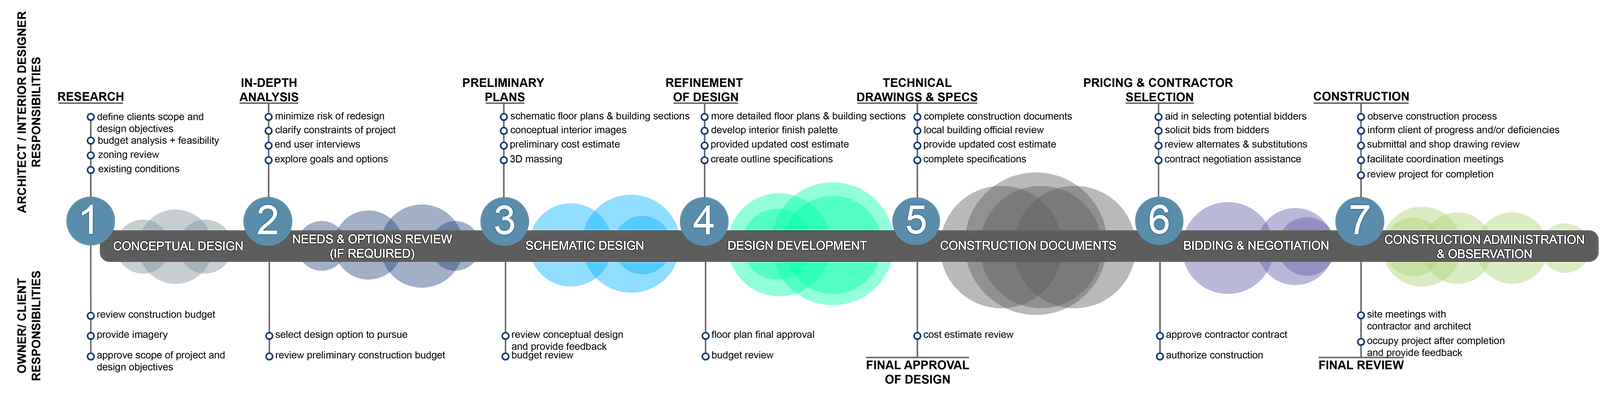 UAA Design Process Infographic.png